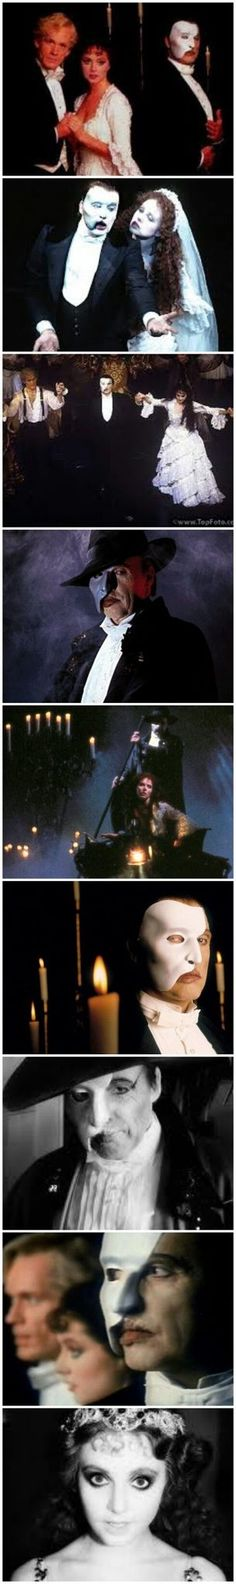 Phantom...I have not seen this live, but would love to one day....no more music was ever beautifully created....